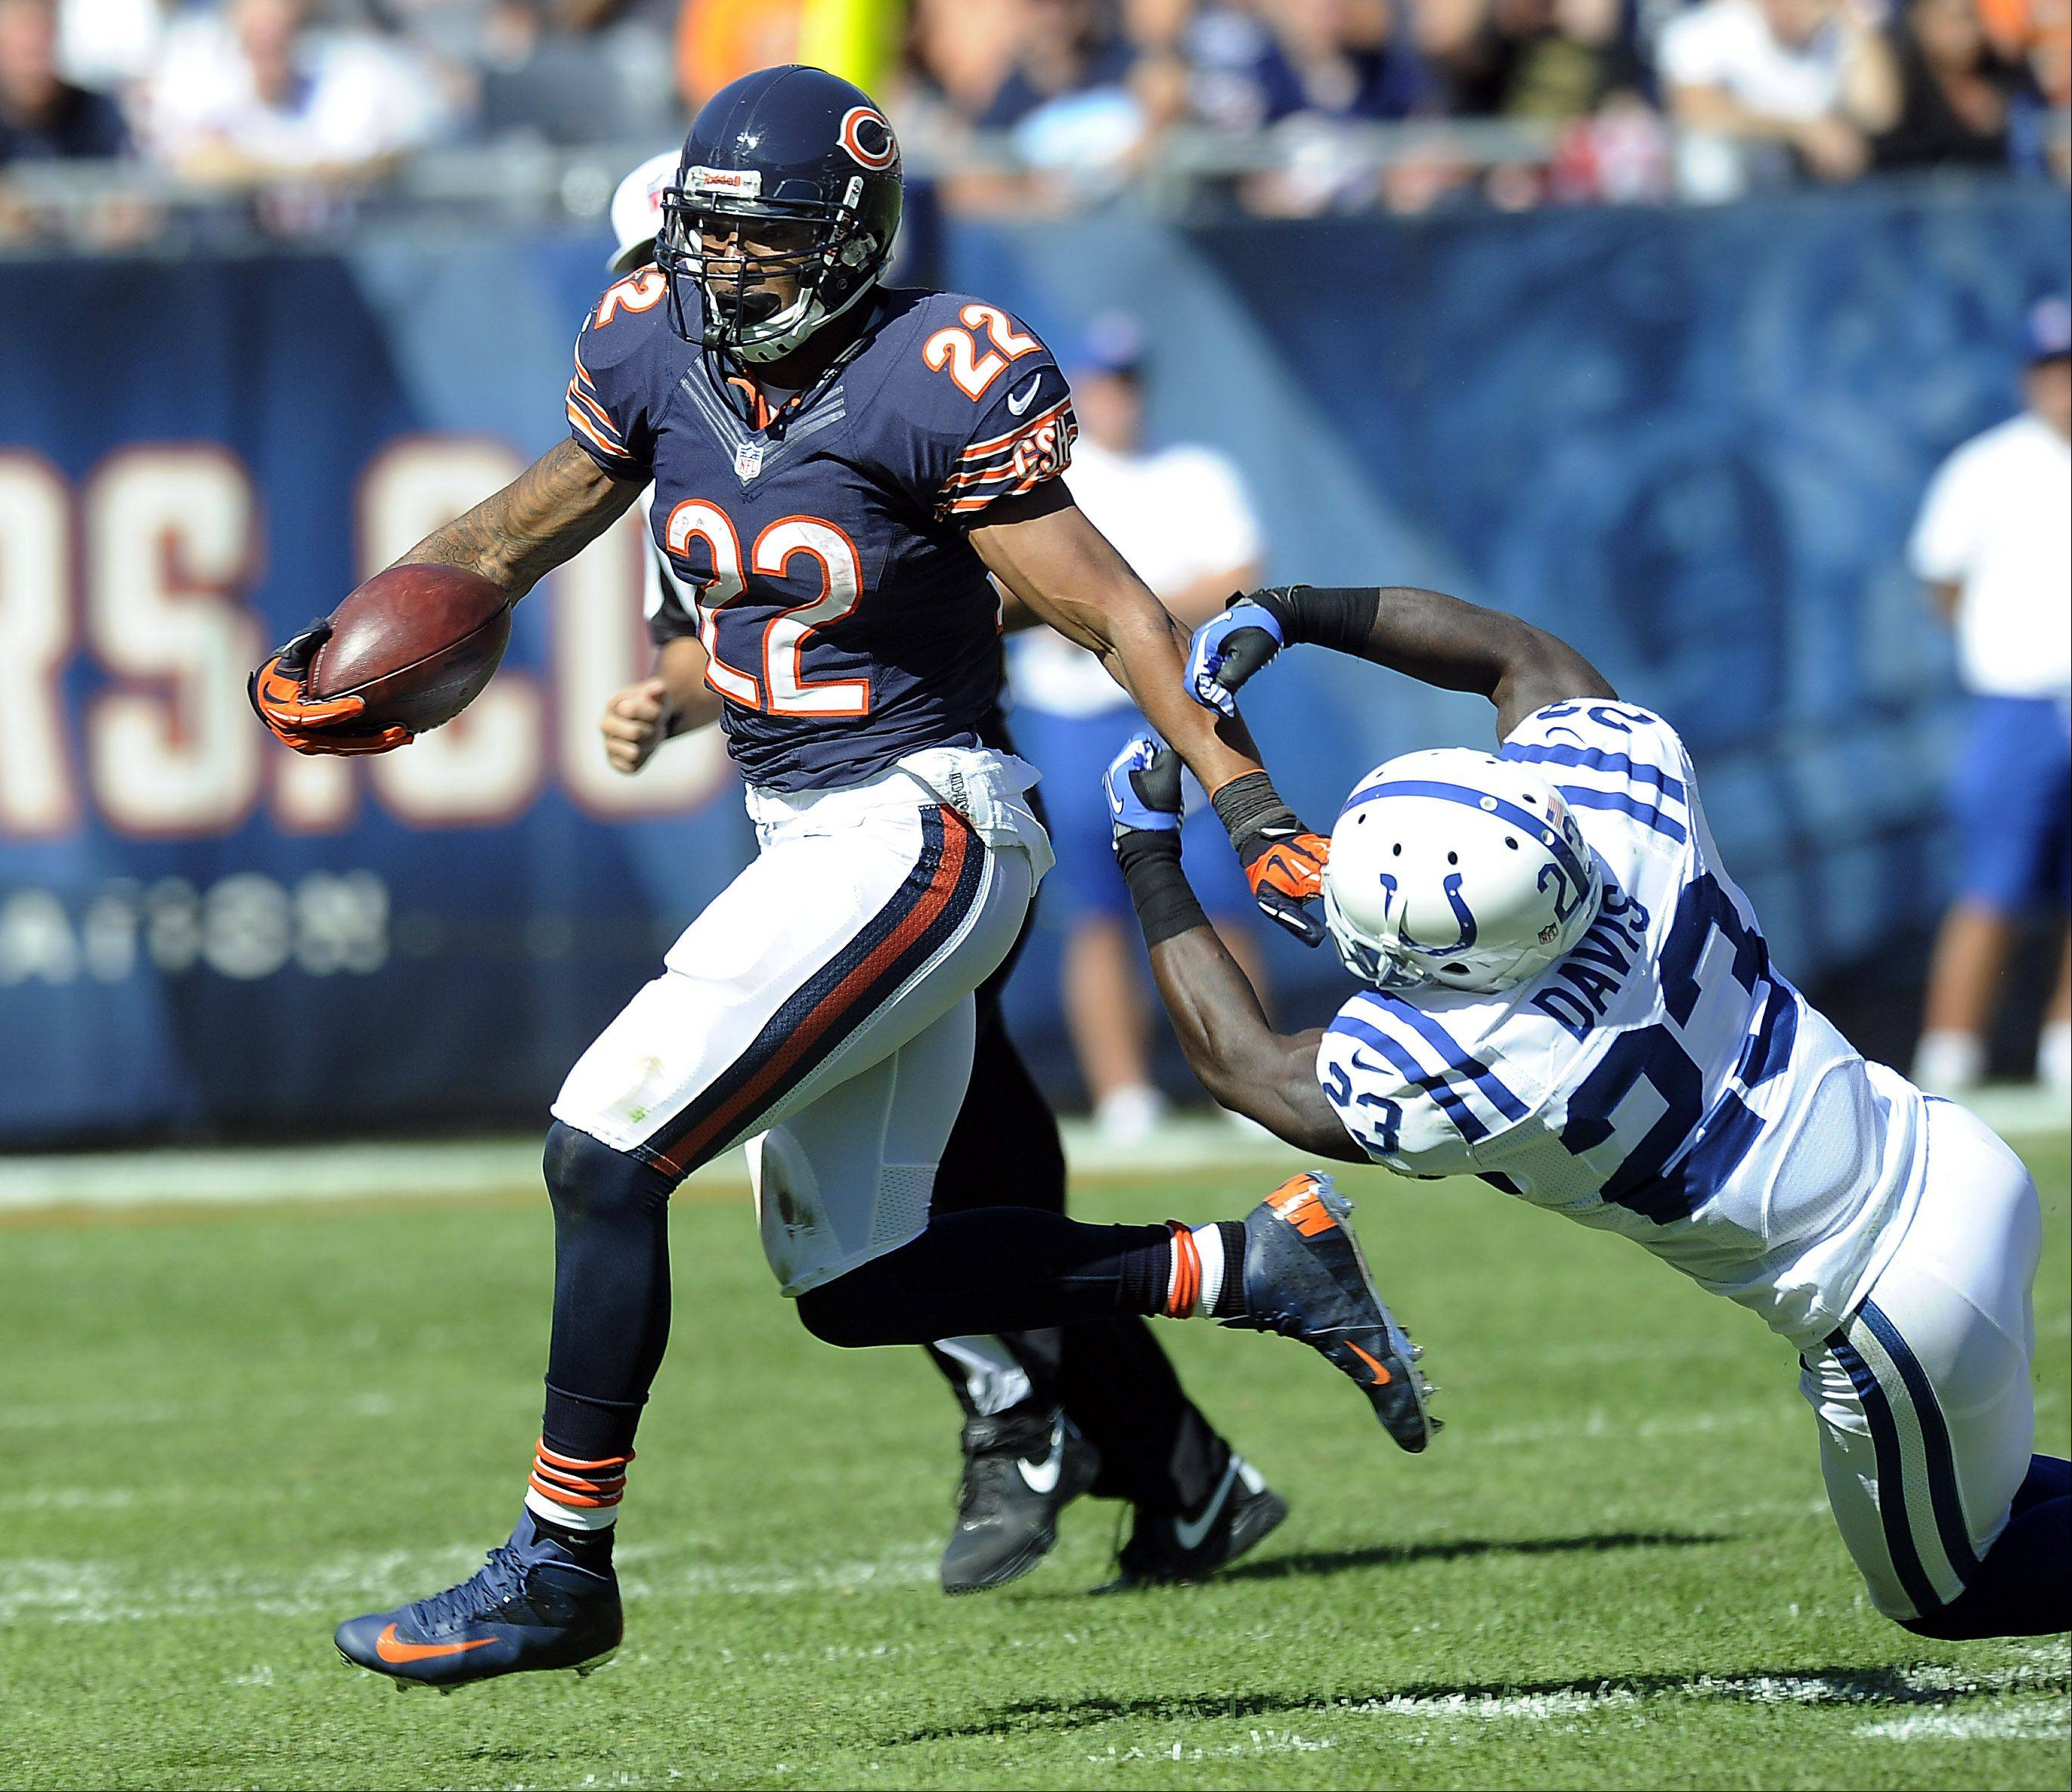 Chicago Bears running back Michael Bush looks for running room during the Bears season opener.